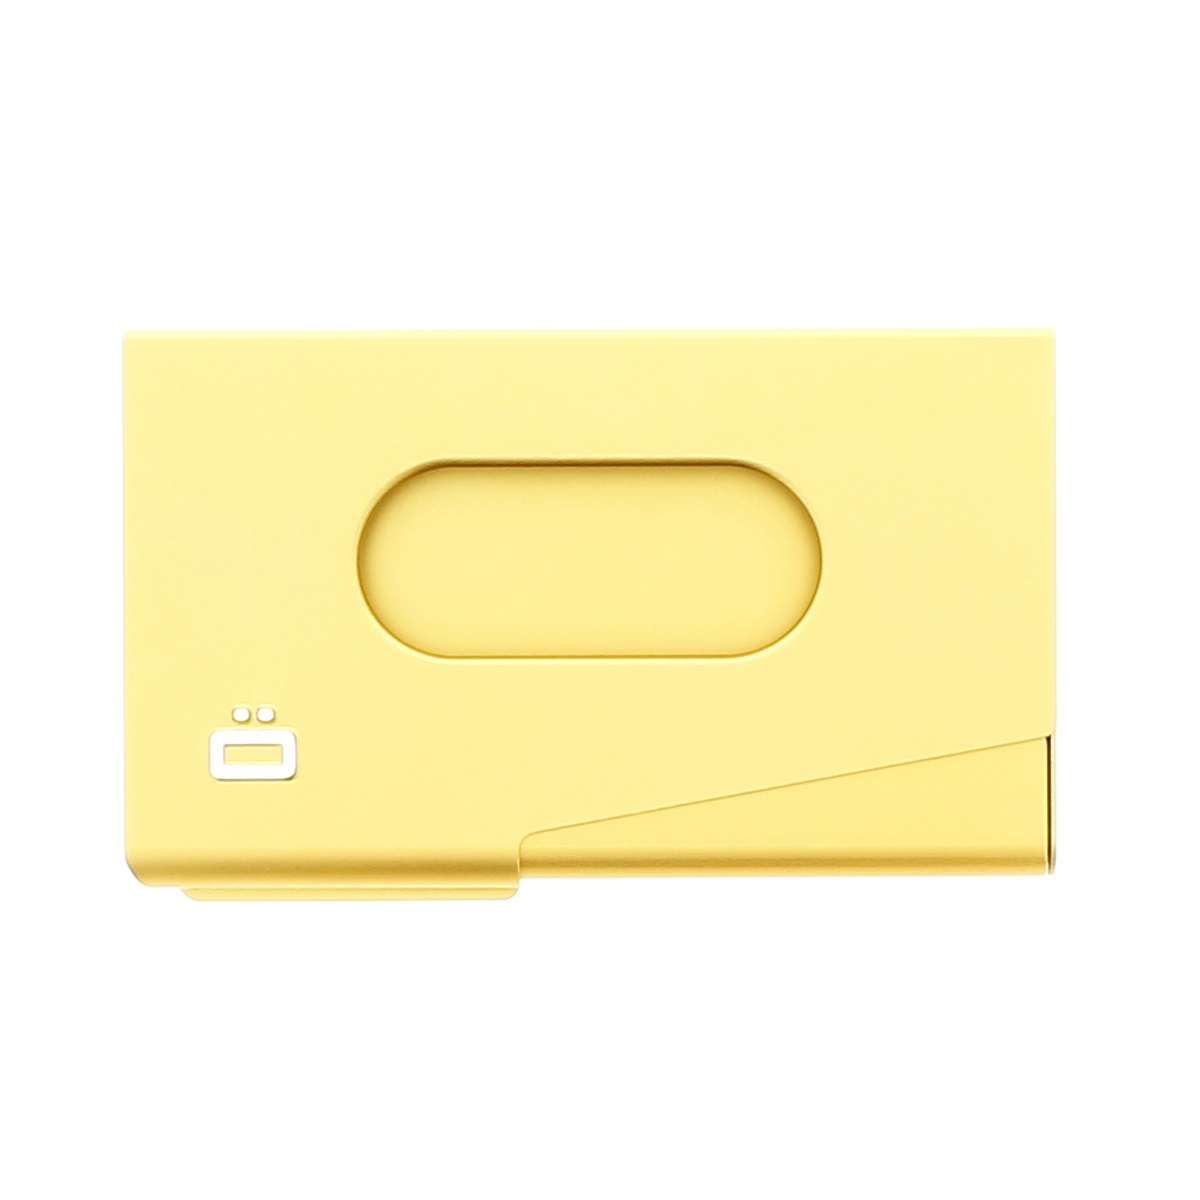 ogon aluminum business card holder one touch gold wallets online. Black Bedroom Furniture Sets. Home Design Ideas